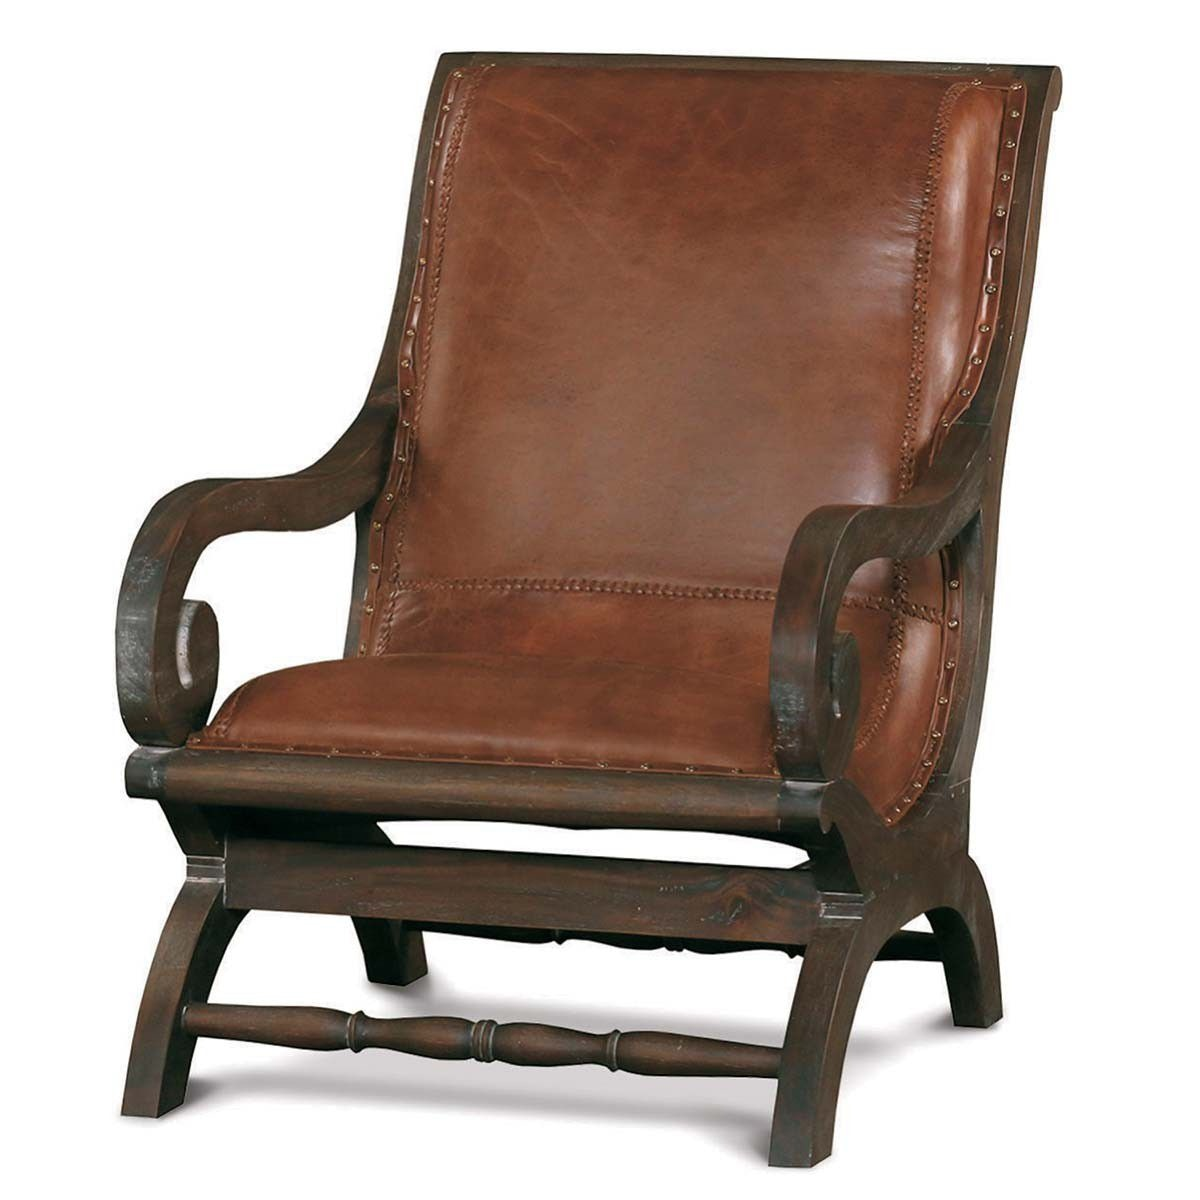 Bramble Living Room Lazy Chair 10861 Indian River  : 10861 cca m from www.indianriverfurniture.com size 1024 x 768 jpeg 40kB